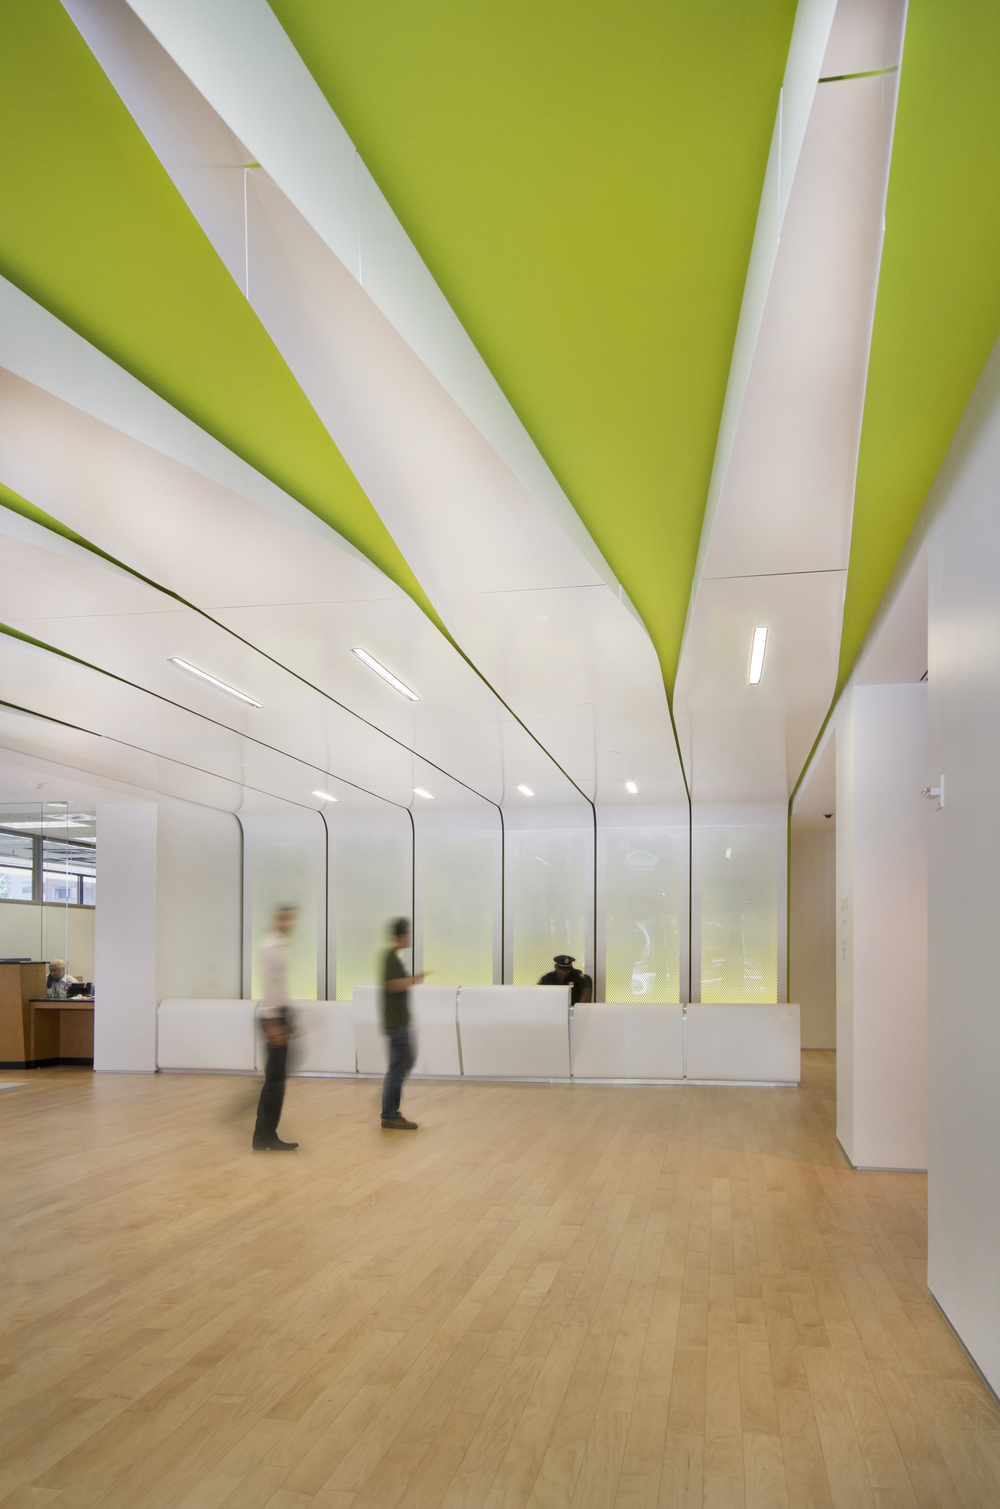 City of Atlanta - Gallery 72 // Client: Image Manufacturing Group & Stanley Beaman Sears Architects